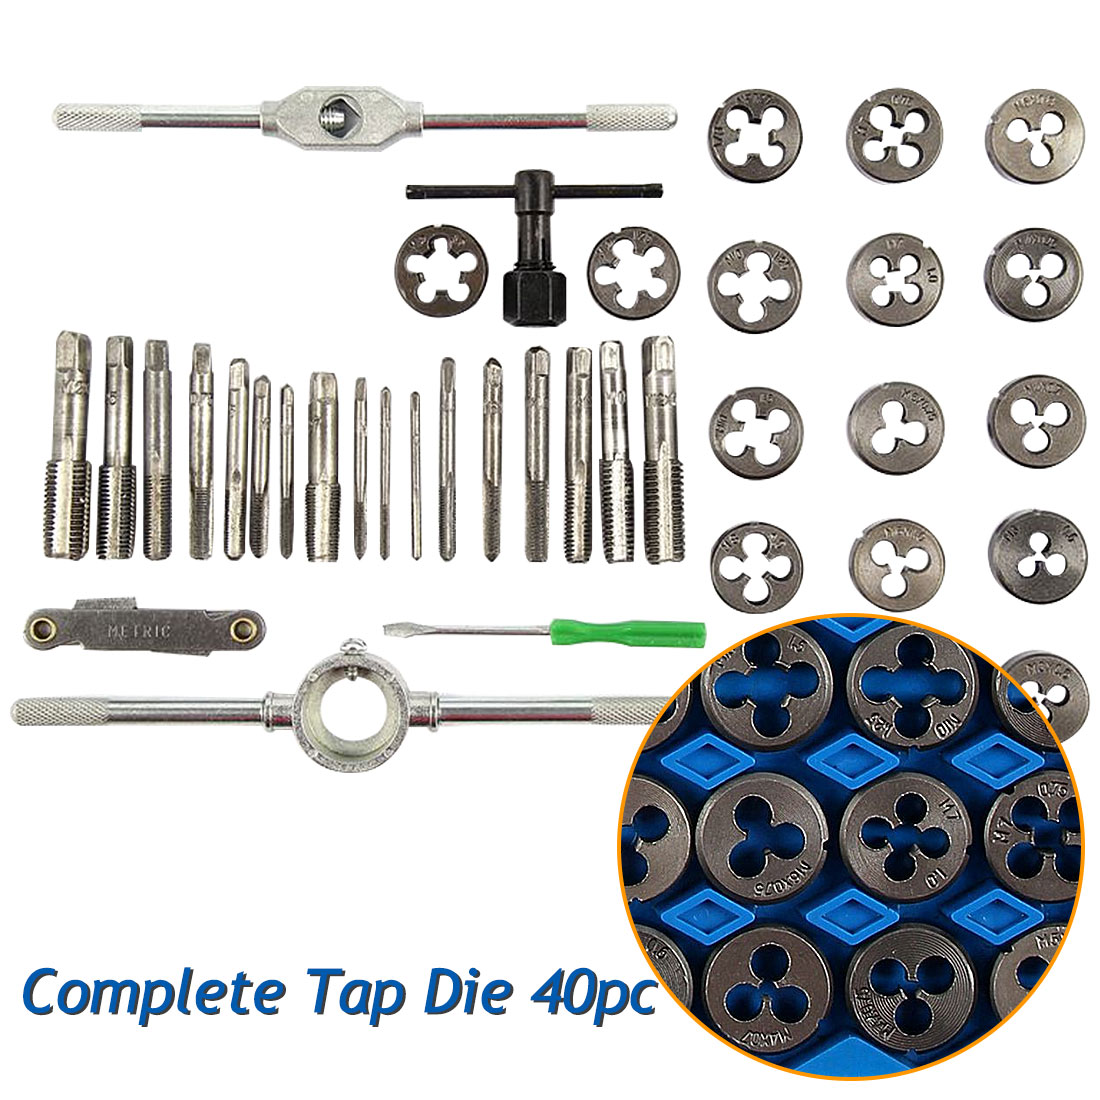 New 40pcs Tap Die Set M3-M12 Screw Thread Metric Taps Wrench Dies DIY Kit Wrench Screw Threading Hand Tools Alloy Metal With Box